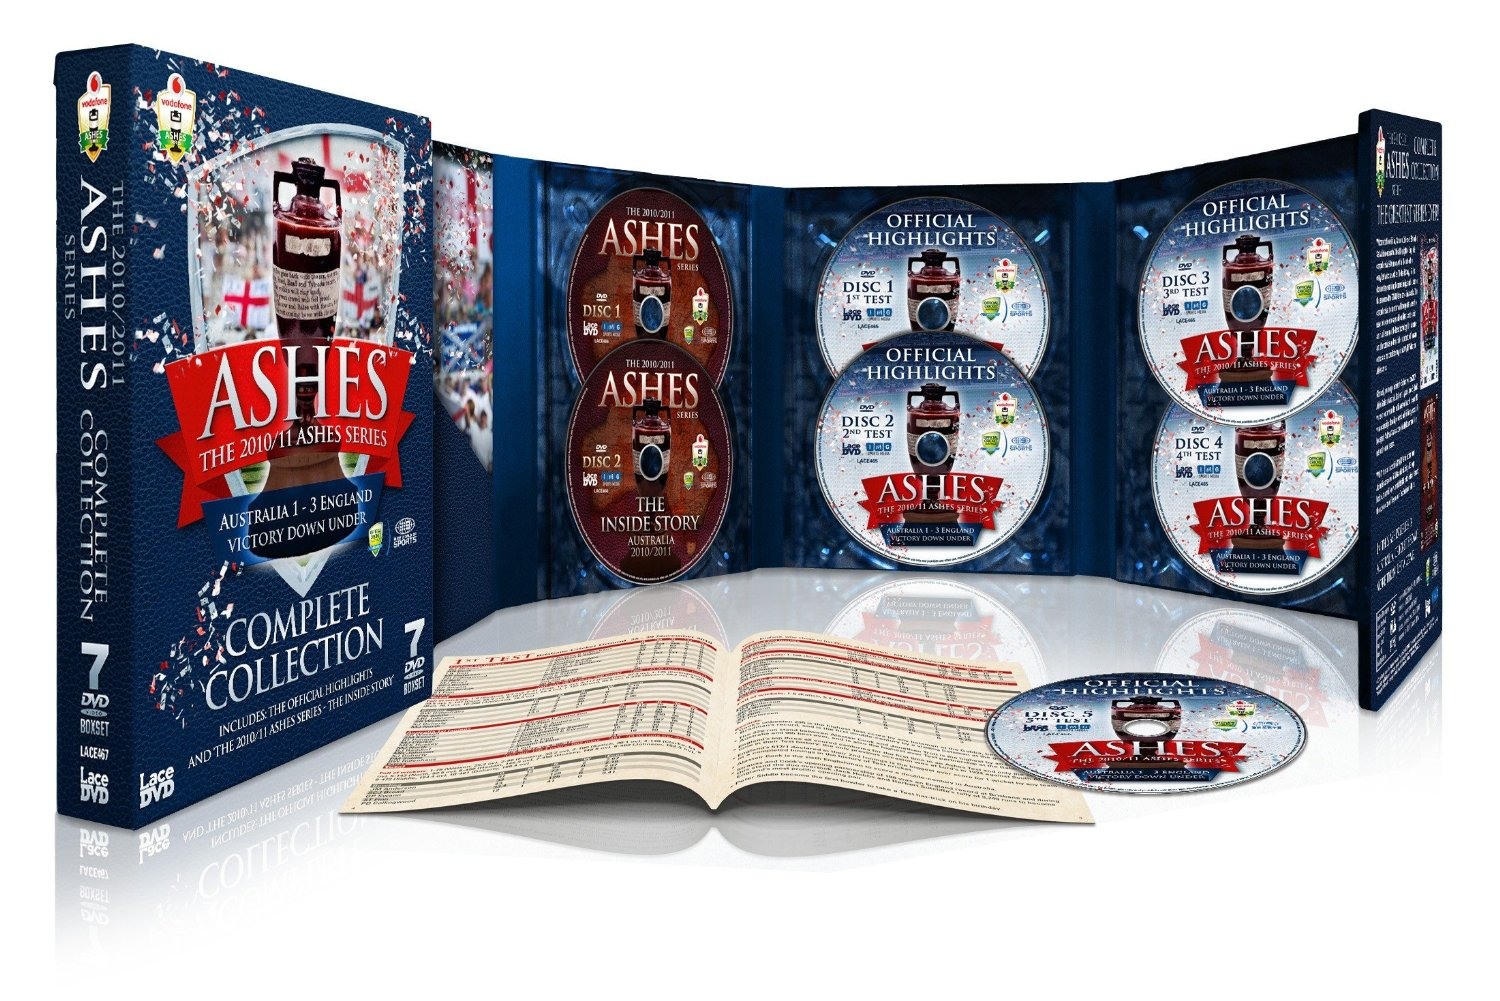 The Ashes - Complete Collection - Australia 2010/2011 (Limited Edition Box Set) (DVD)